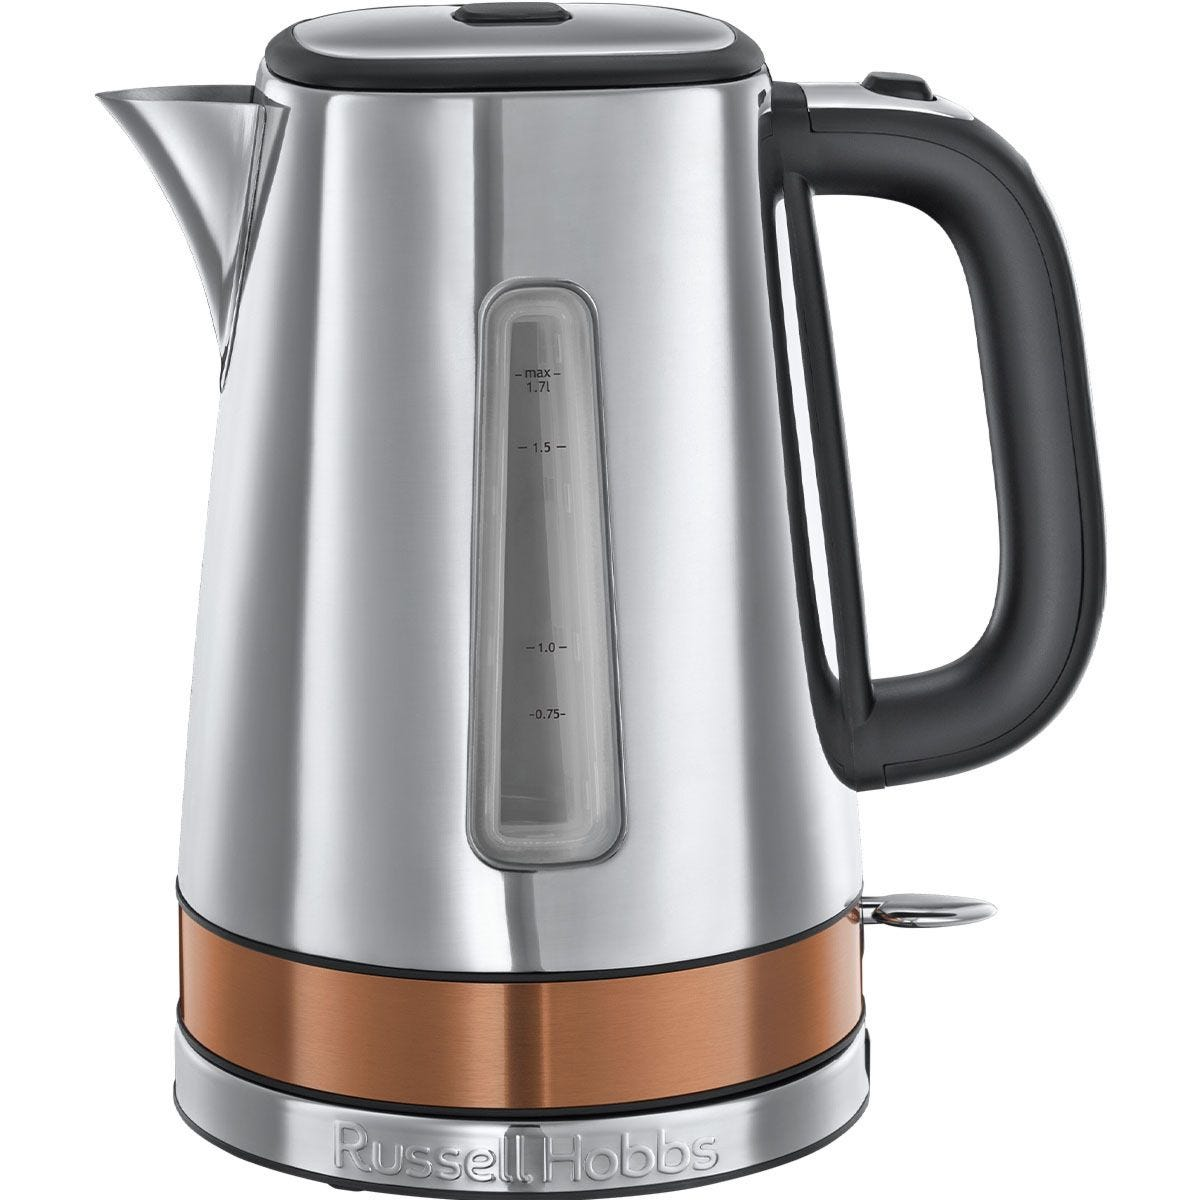 Russell Hobbs 24280 Luna Quiet Boil 1.7L Kettle - Silver and Copper